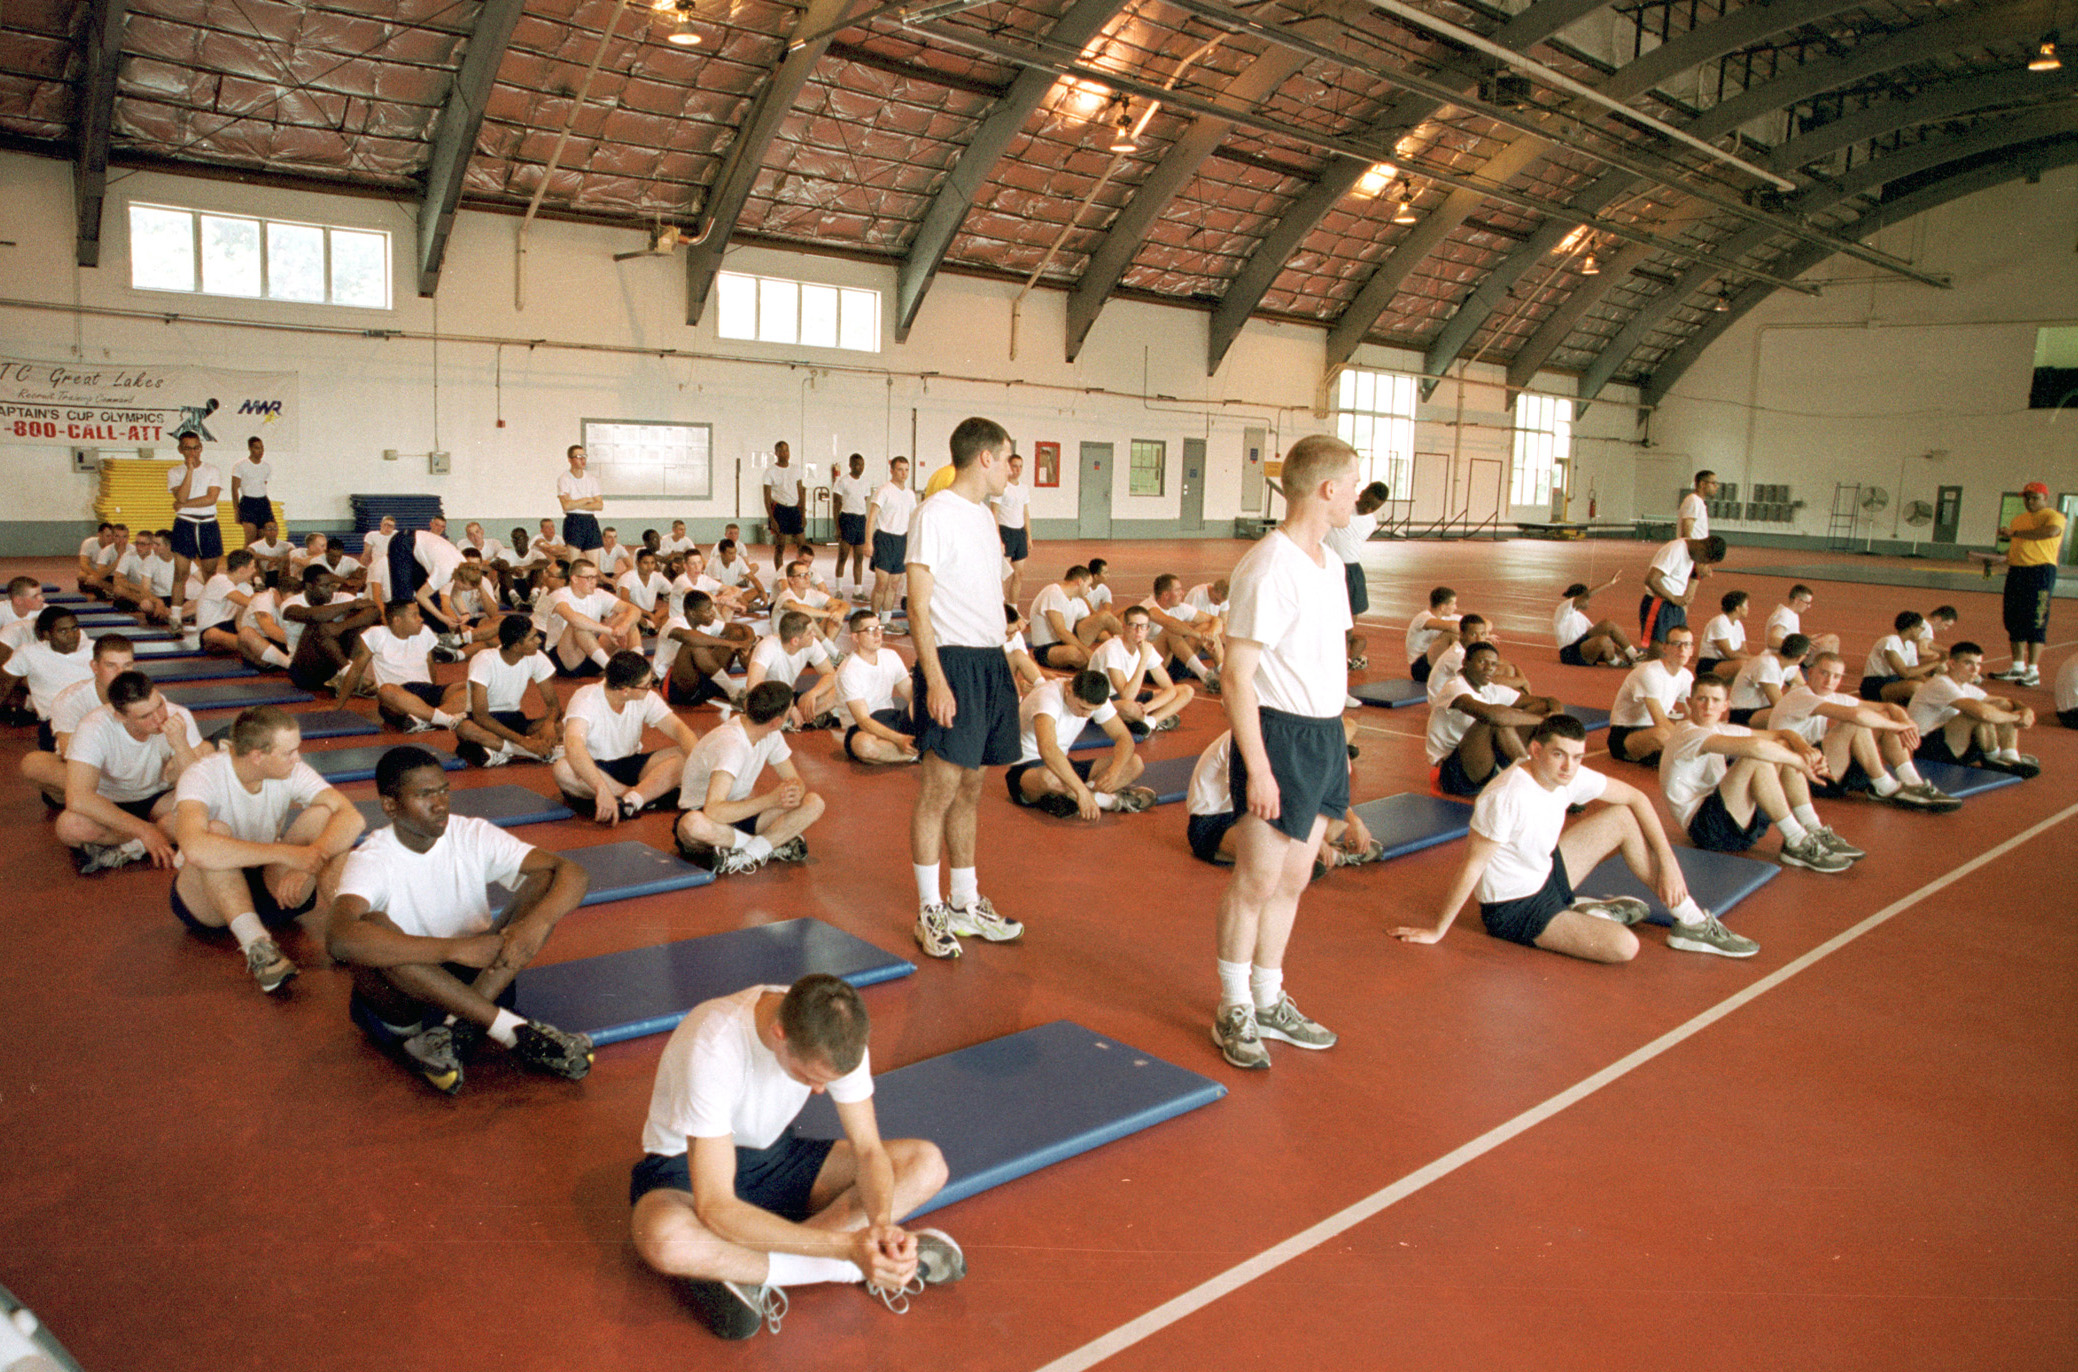 File:US Navy 990909-N-7495A-008 Recruits conduct physical fitness ...